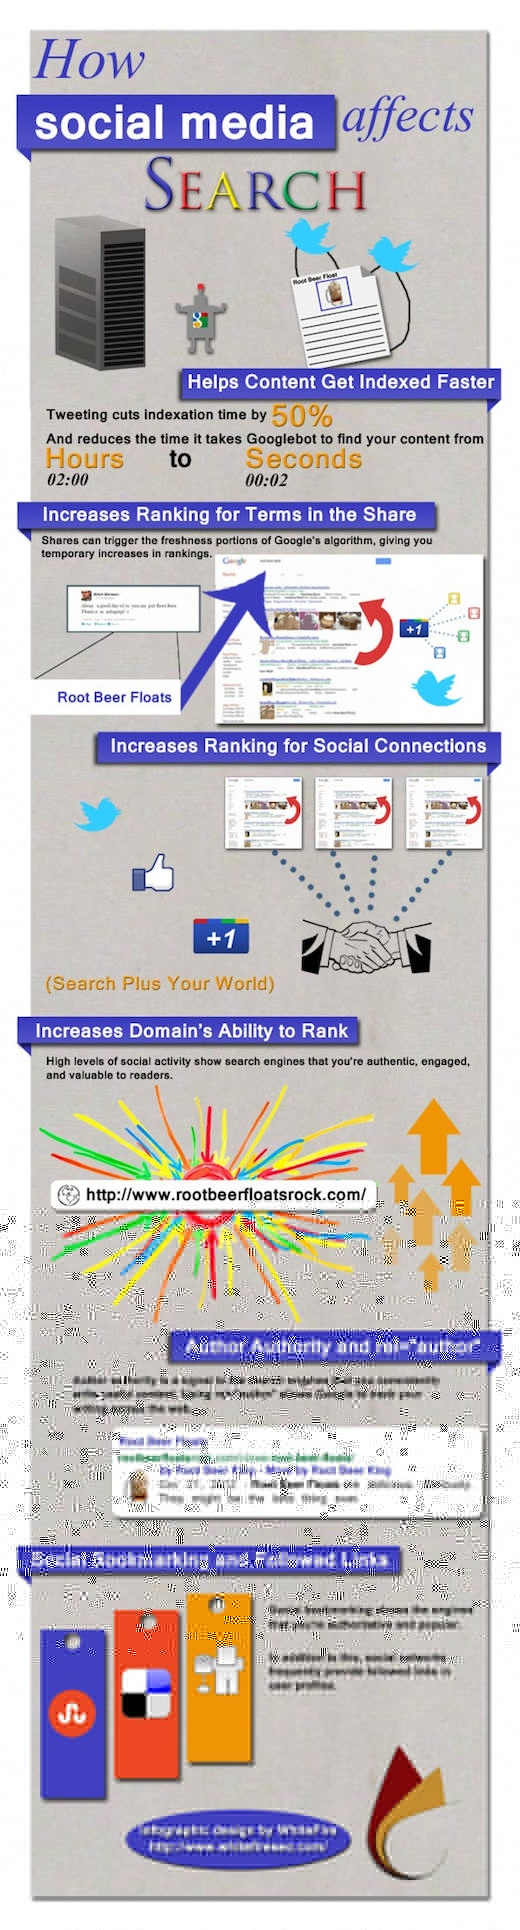 how social affects search